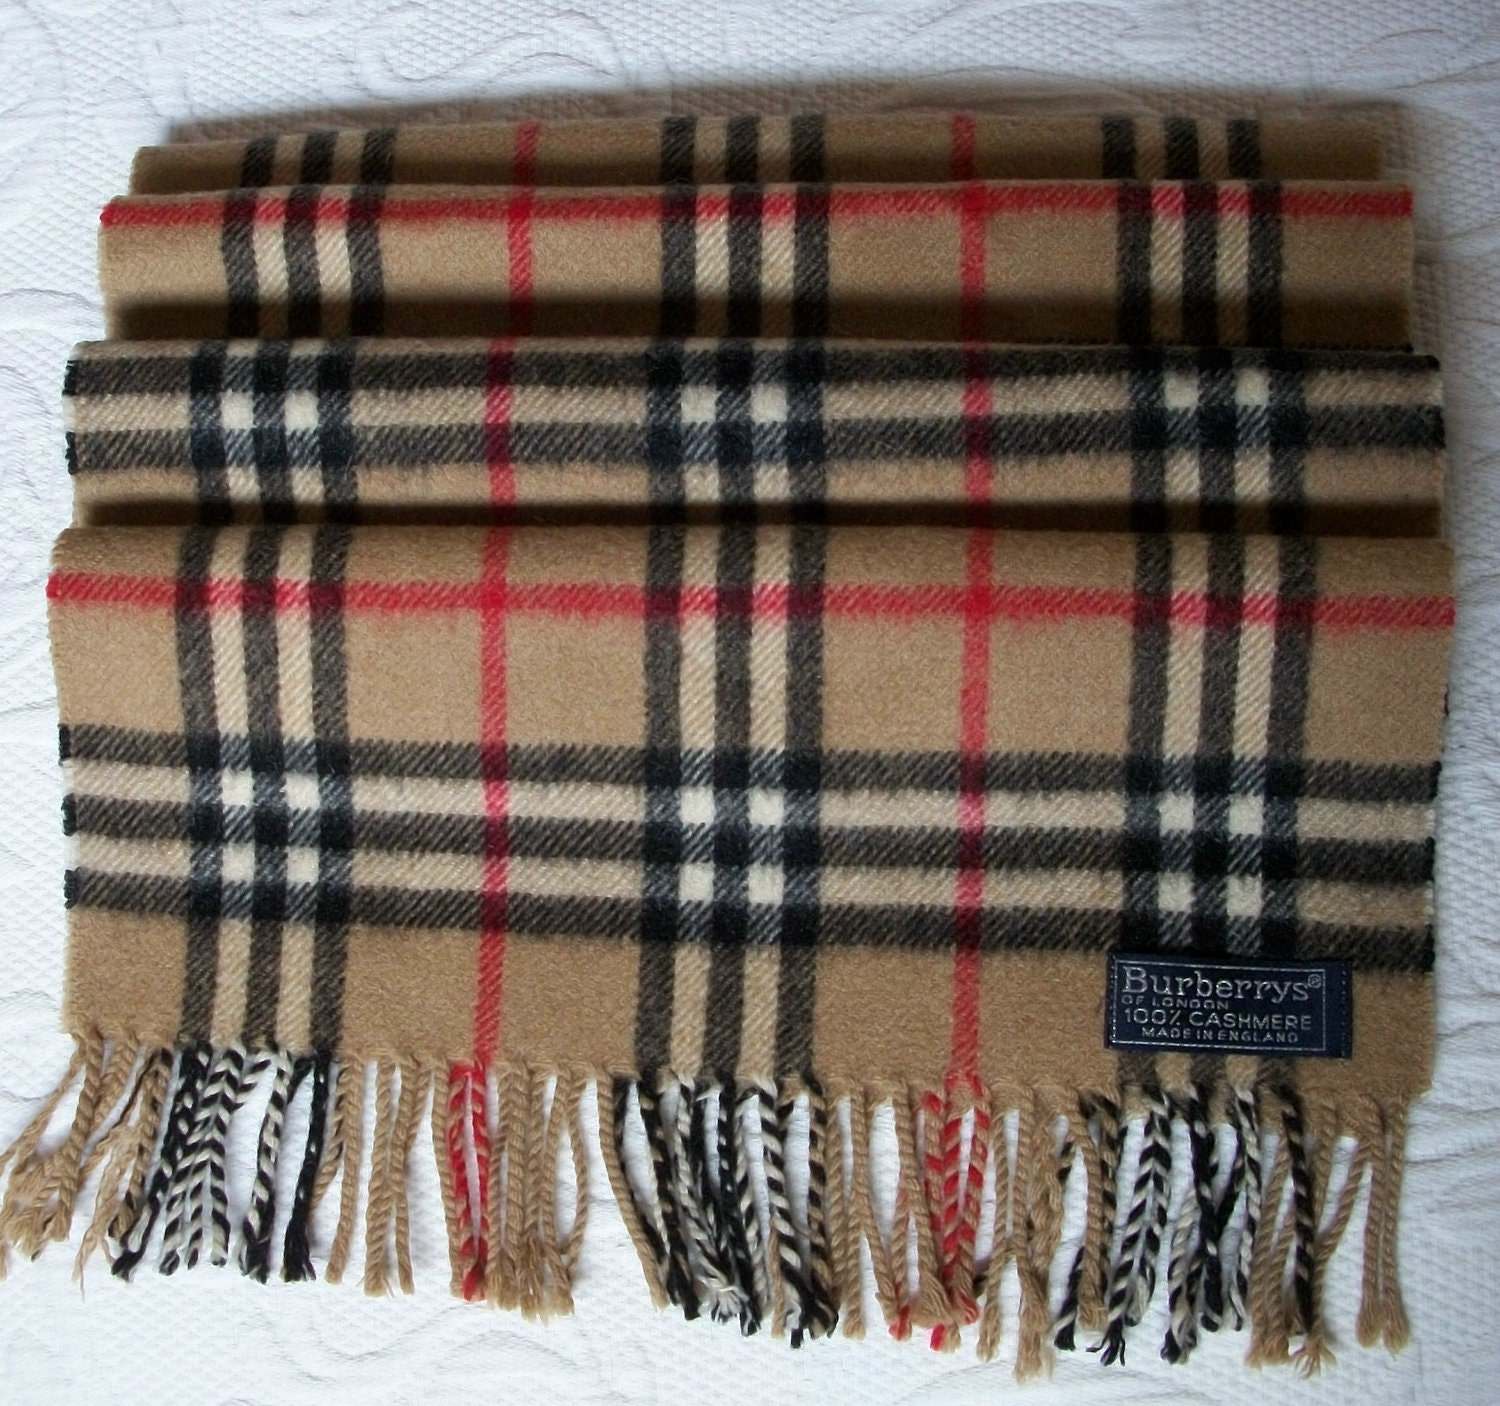 Next To Real Retro S Fake Retro S: Vintage Burberry Scarf 100% Cashmere